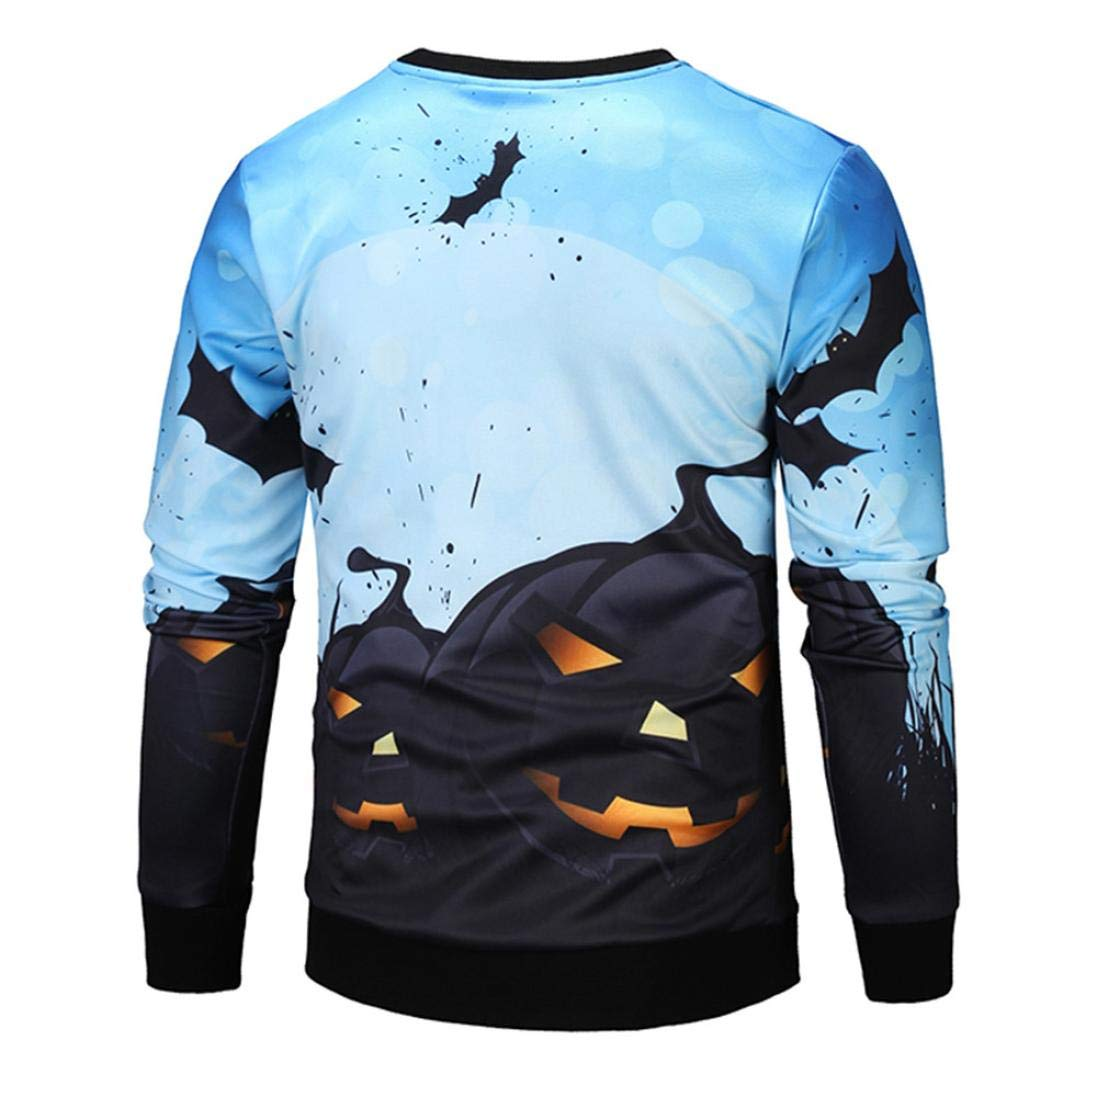 kaifongfu Men Scary Halloween Tops with Pumpkin 14D Print Long Sleeve Party Hoodie Blouse(Blue,S) by kaifongfu-mens clothes (Image #3)